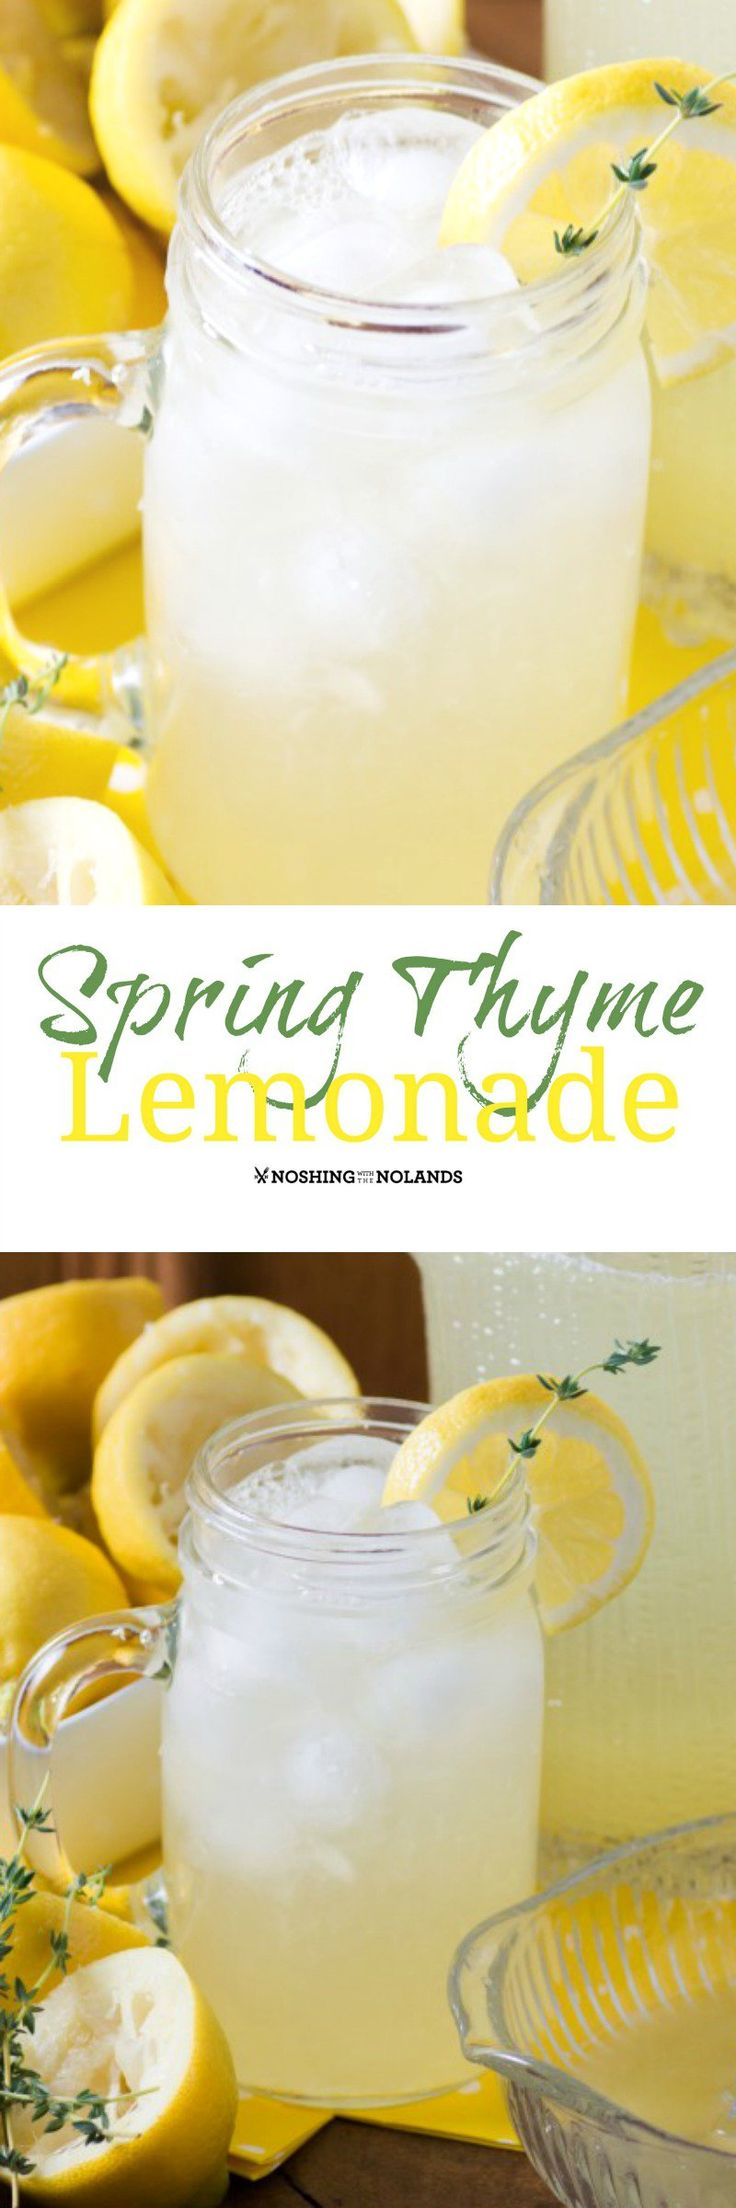 Spring Thyme Lemonade by Noshing With The Nolands - With the warmer weather coming this refreshing treat will quench your thirst!  There's nothing like homemade lemonade!